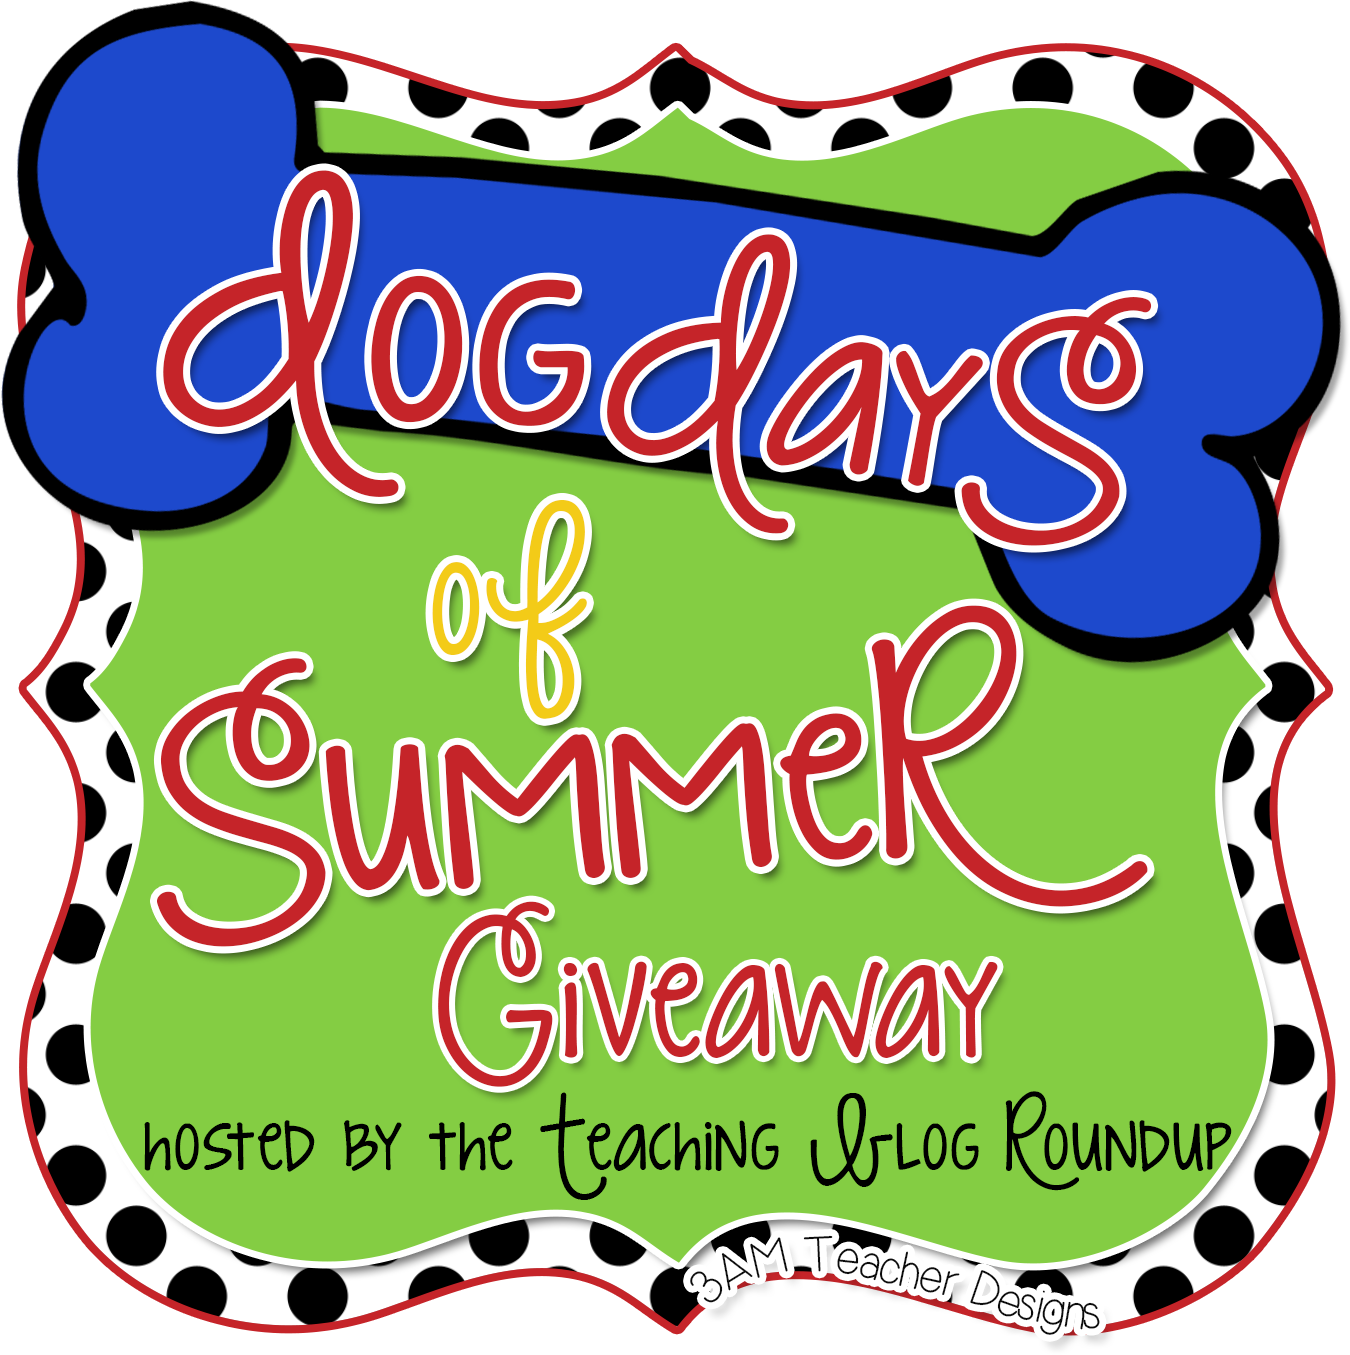 Teaching Blog Round Up: Dog Days of Summer Giveaway